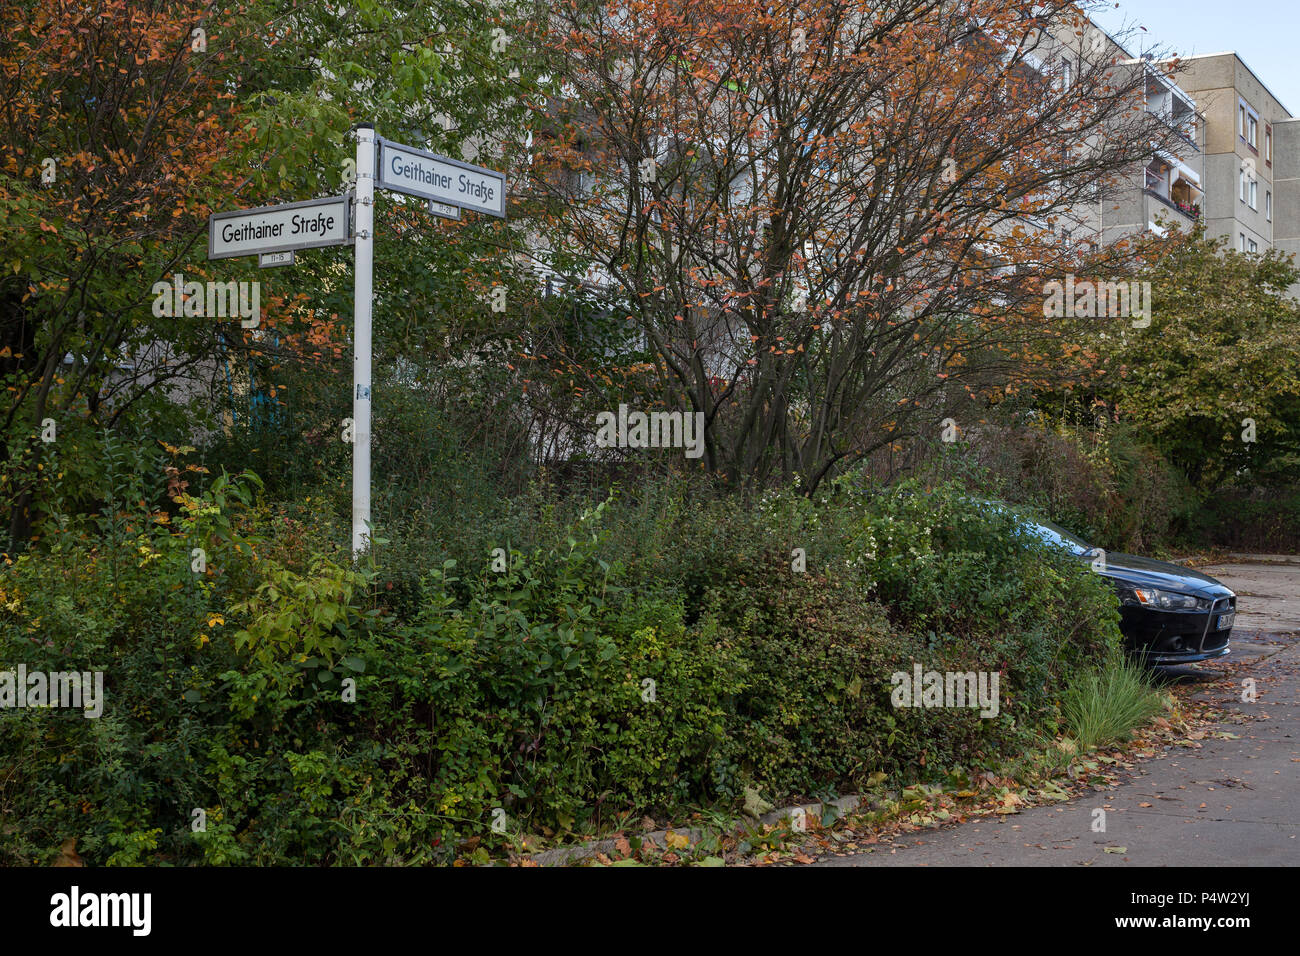 Berlin, Germany, street signs and parked car in Geithainer Strasse in Berlin-Hellersdorf - Stock Image